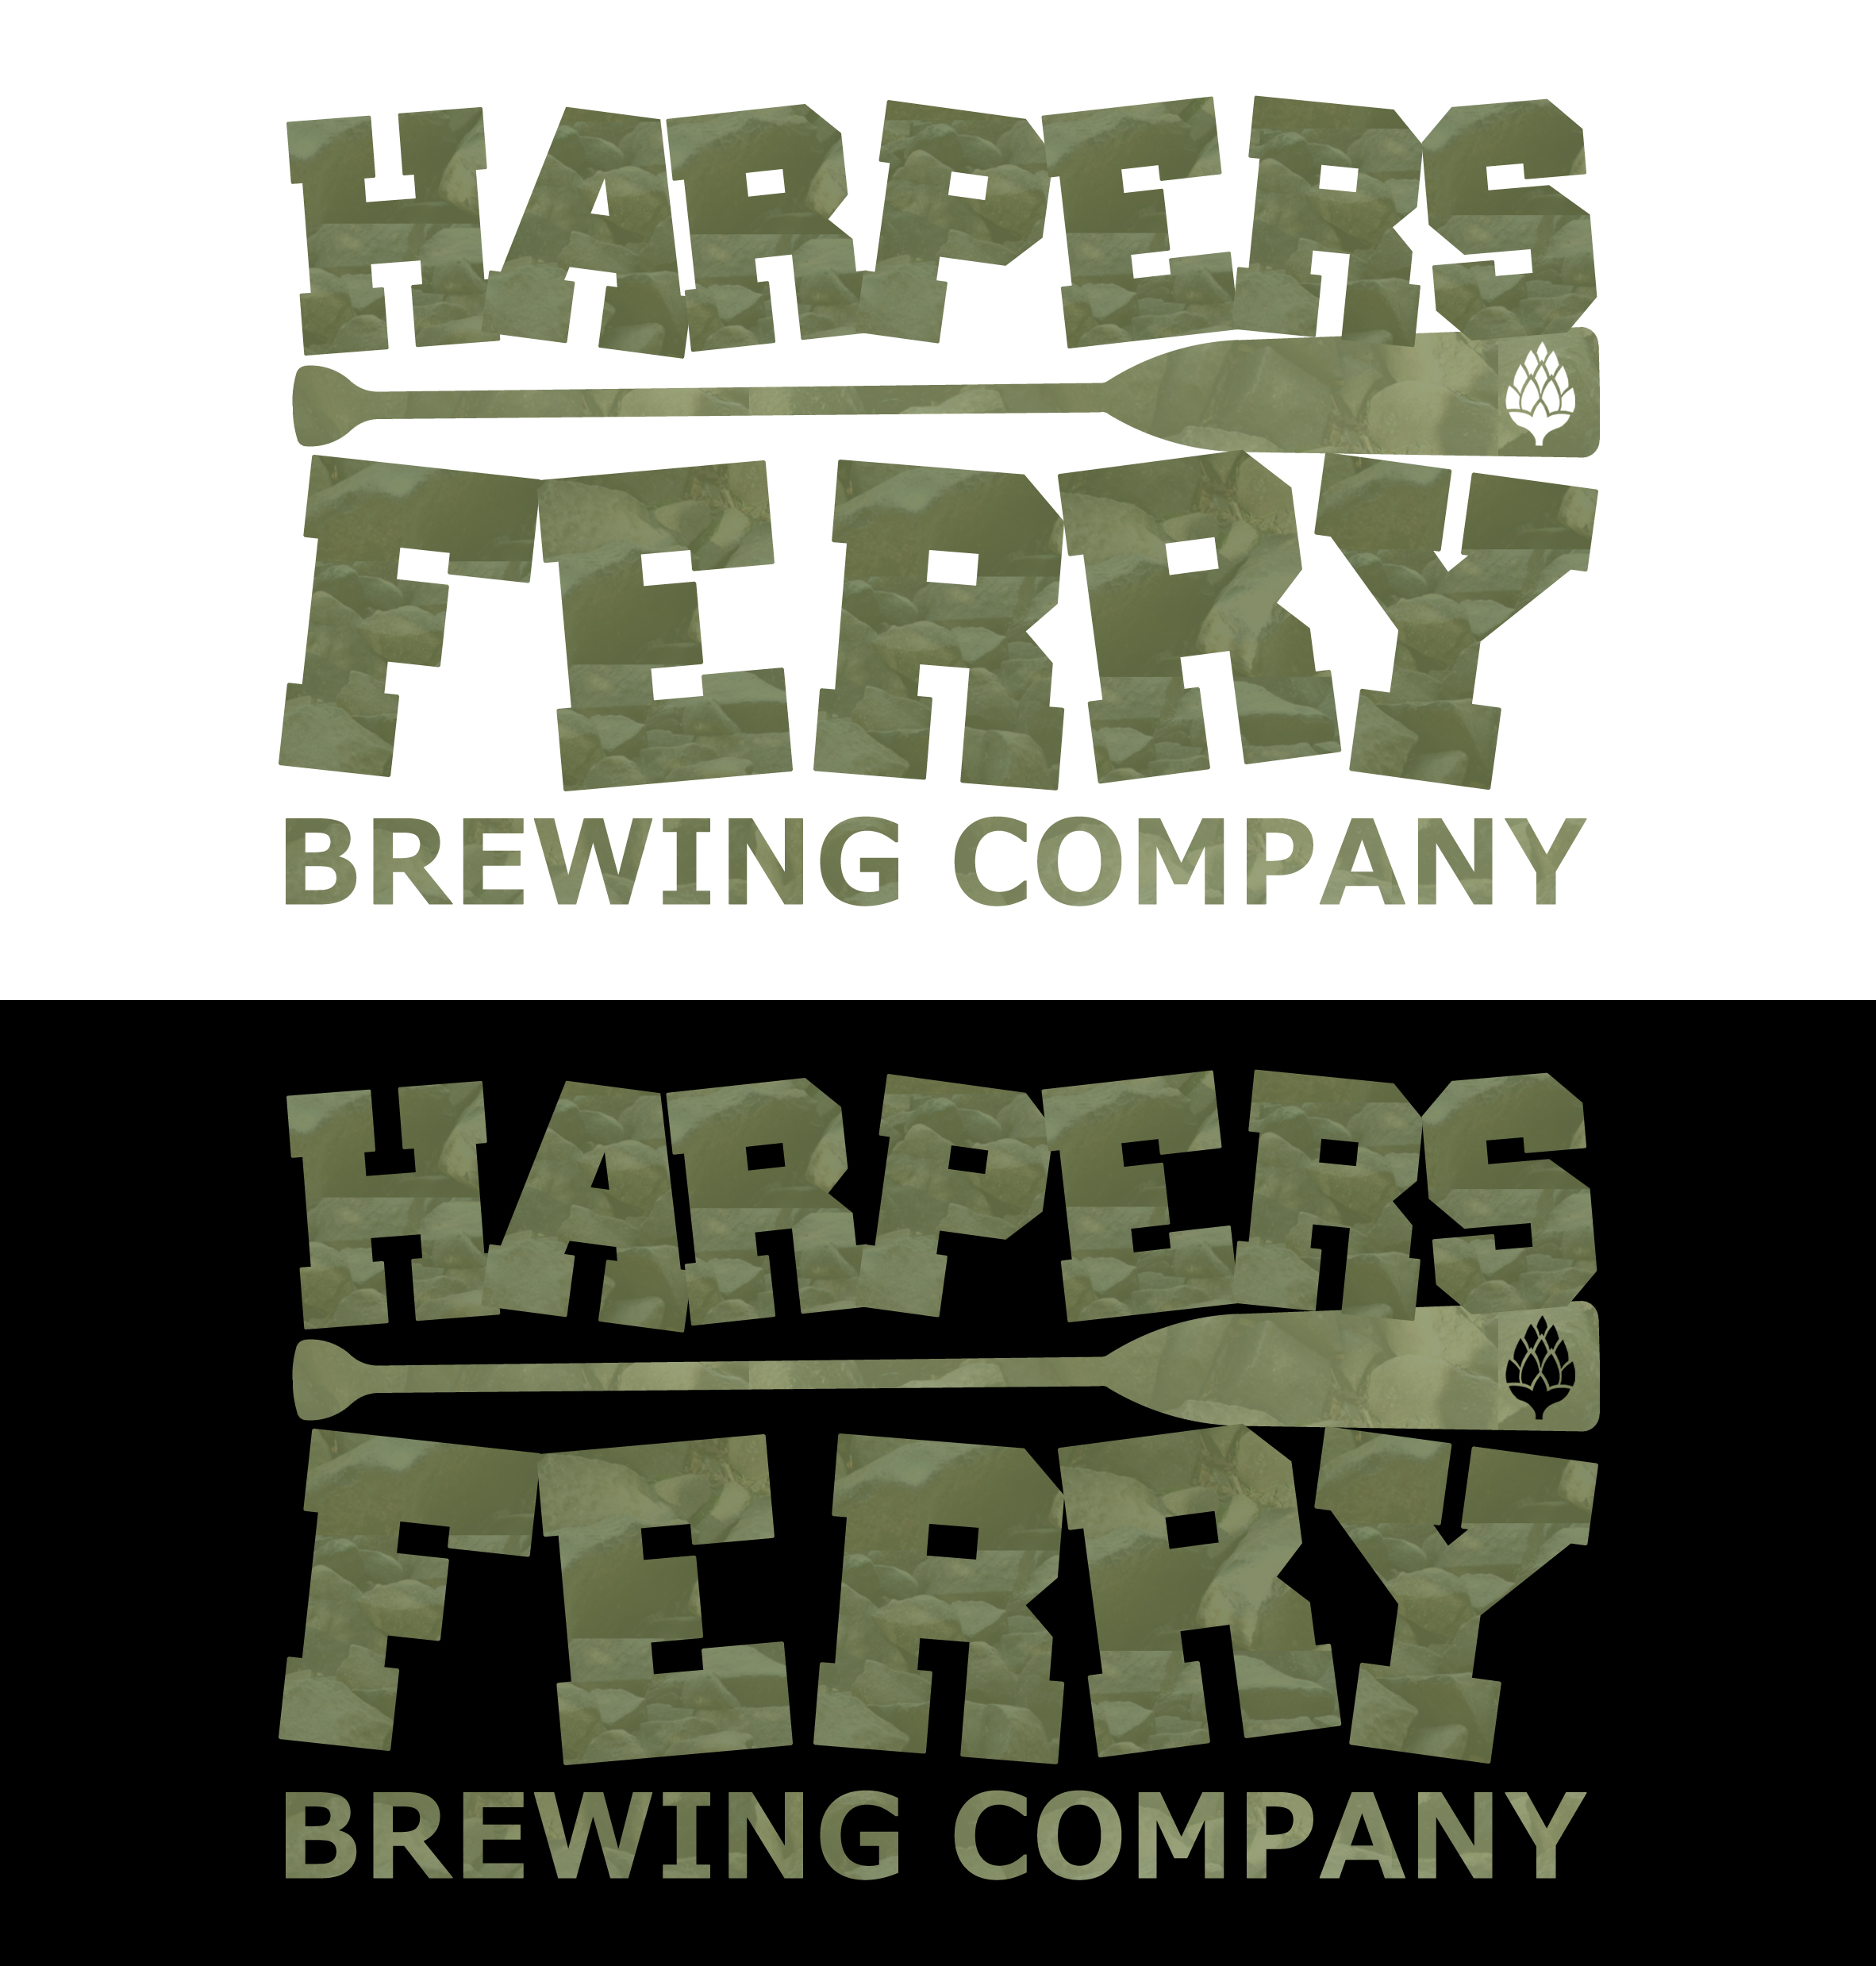 Logo Design by JSDESIGNGROUP - Entry No. 110 in the Logo Design Contest Unique Logo Design Wanted for Harpers ferry brewing company.